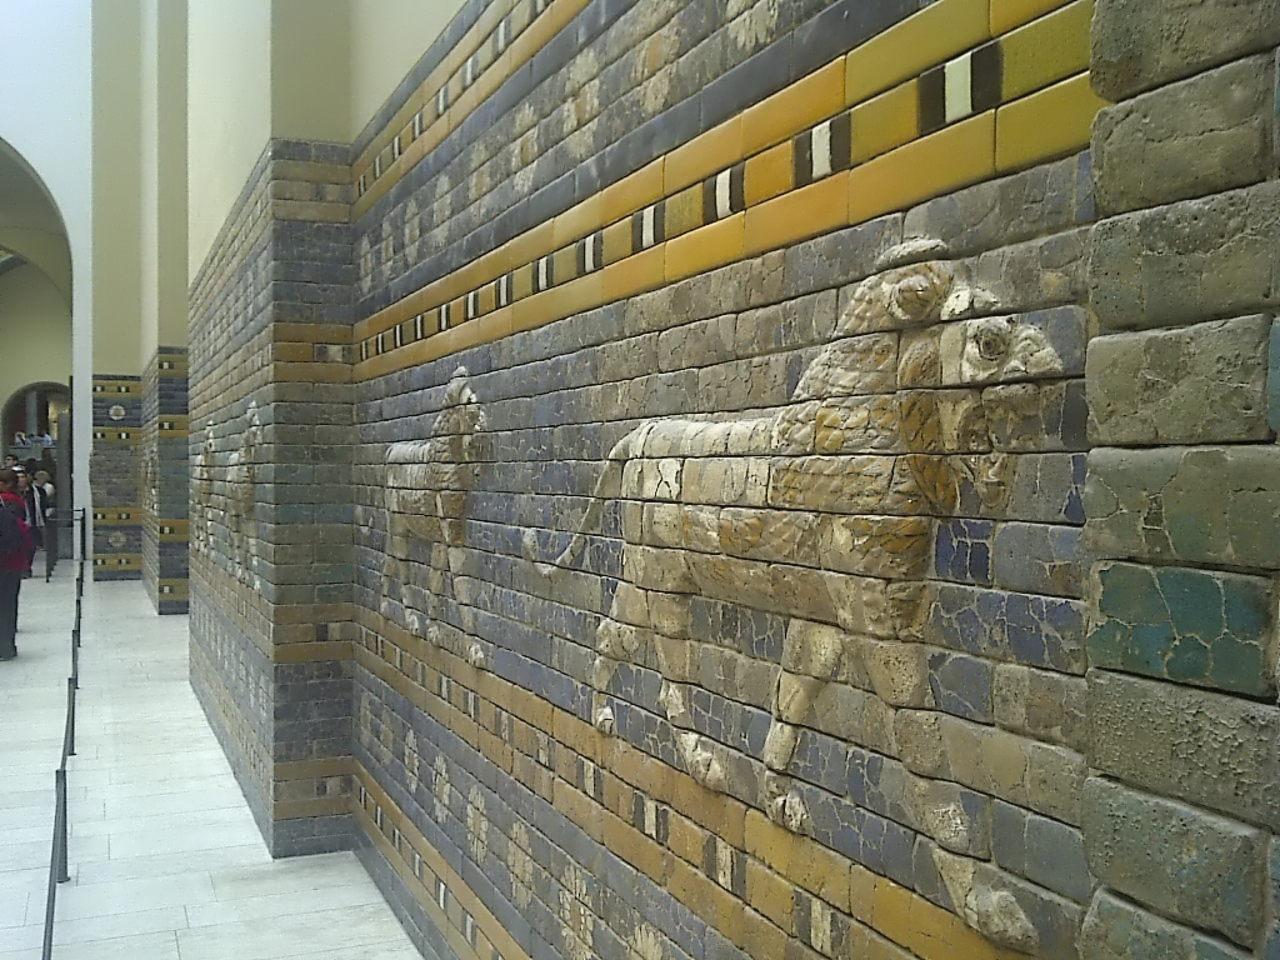 Ishtar Gate, procession street, right view